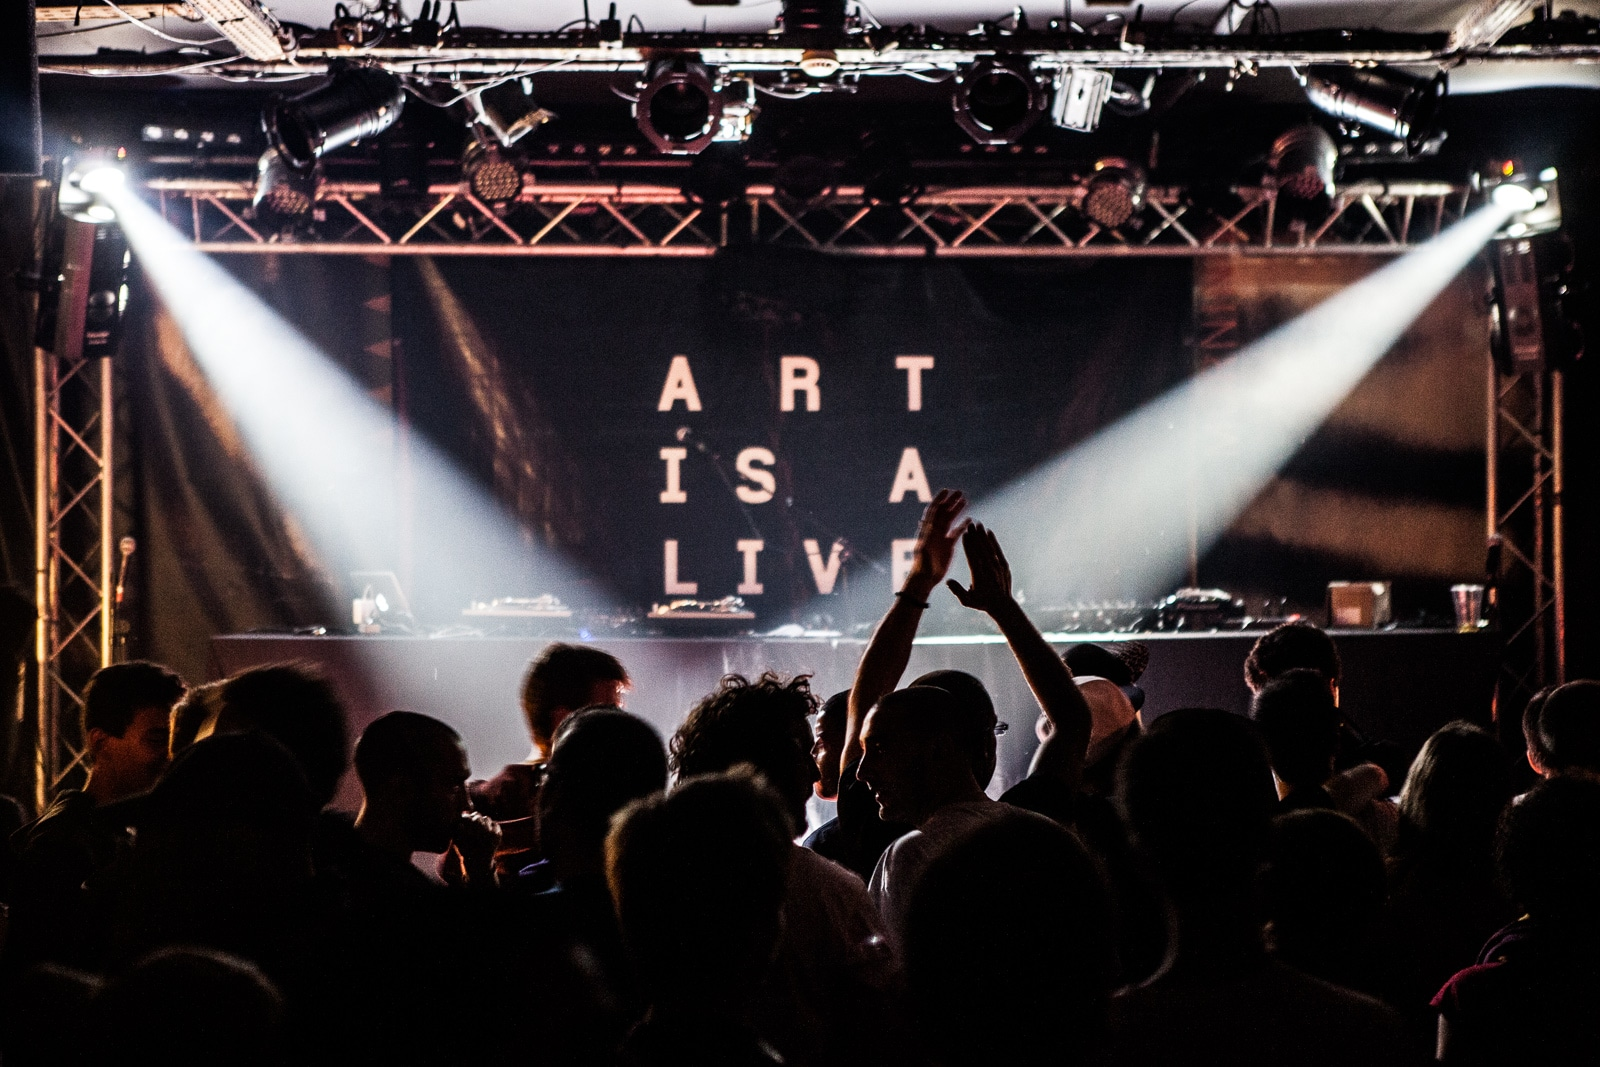 Art is a live #6 x New Morning : Bohemian Club, Gaïden & Yoshi et la Scred Connexion.